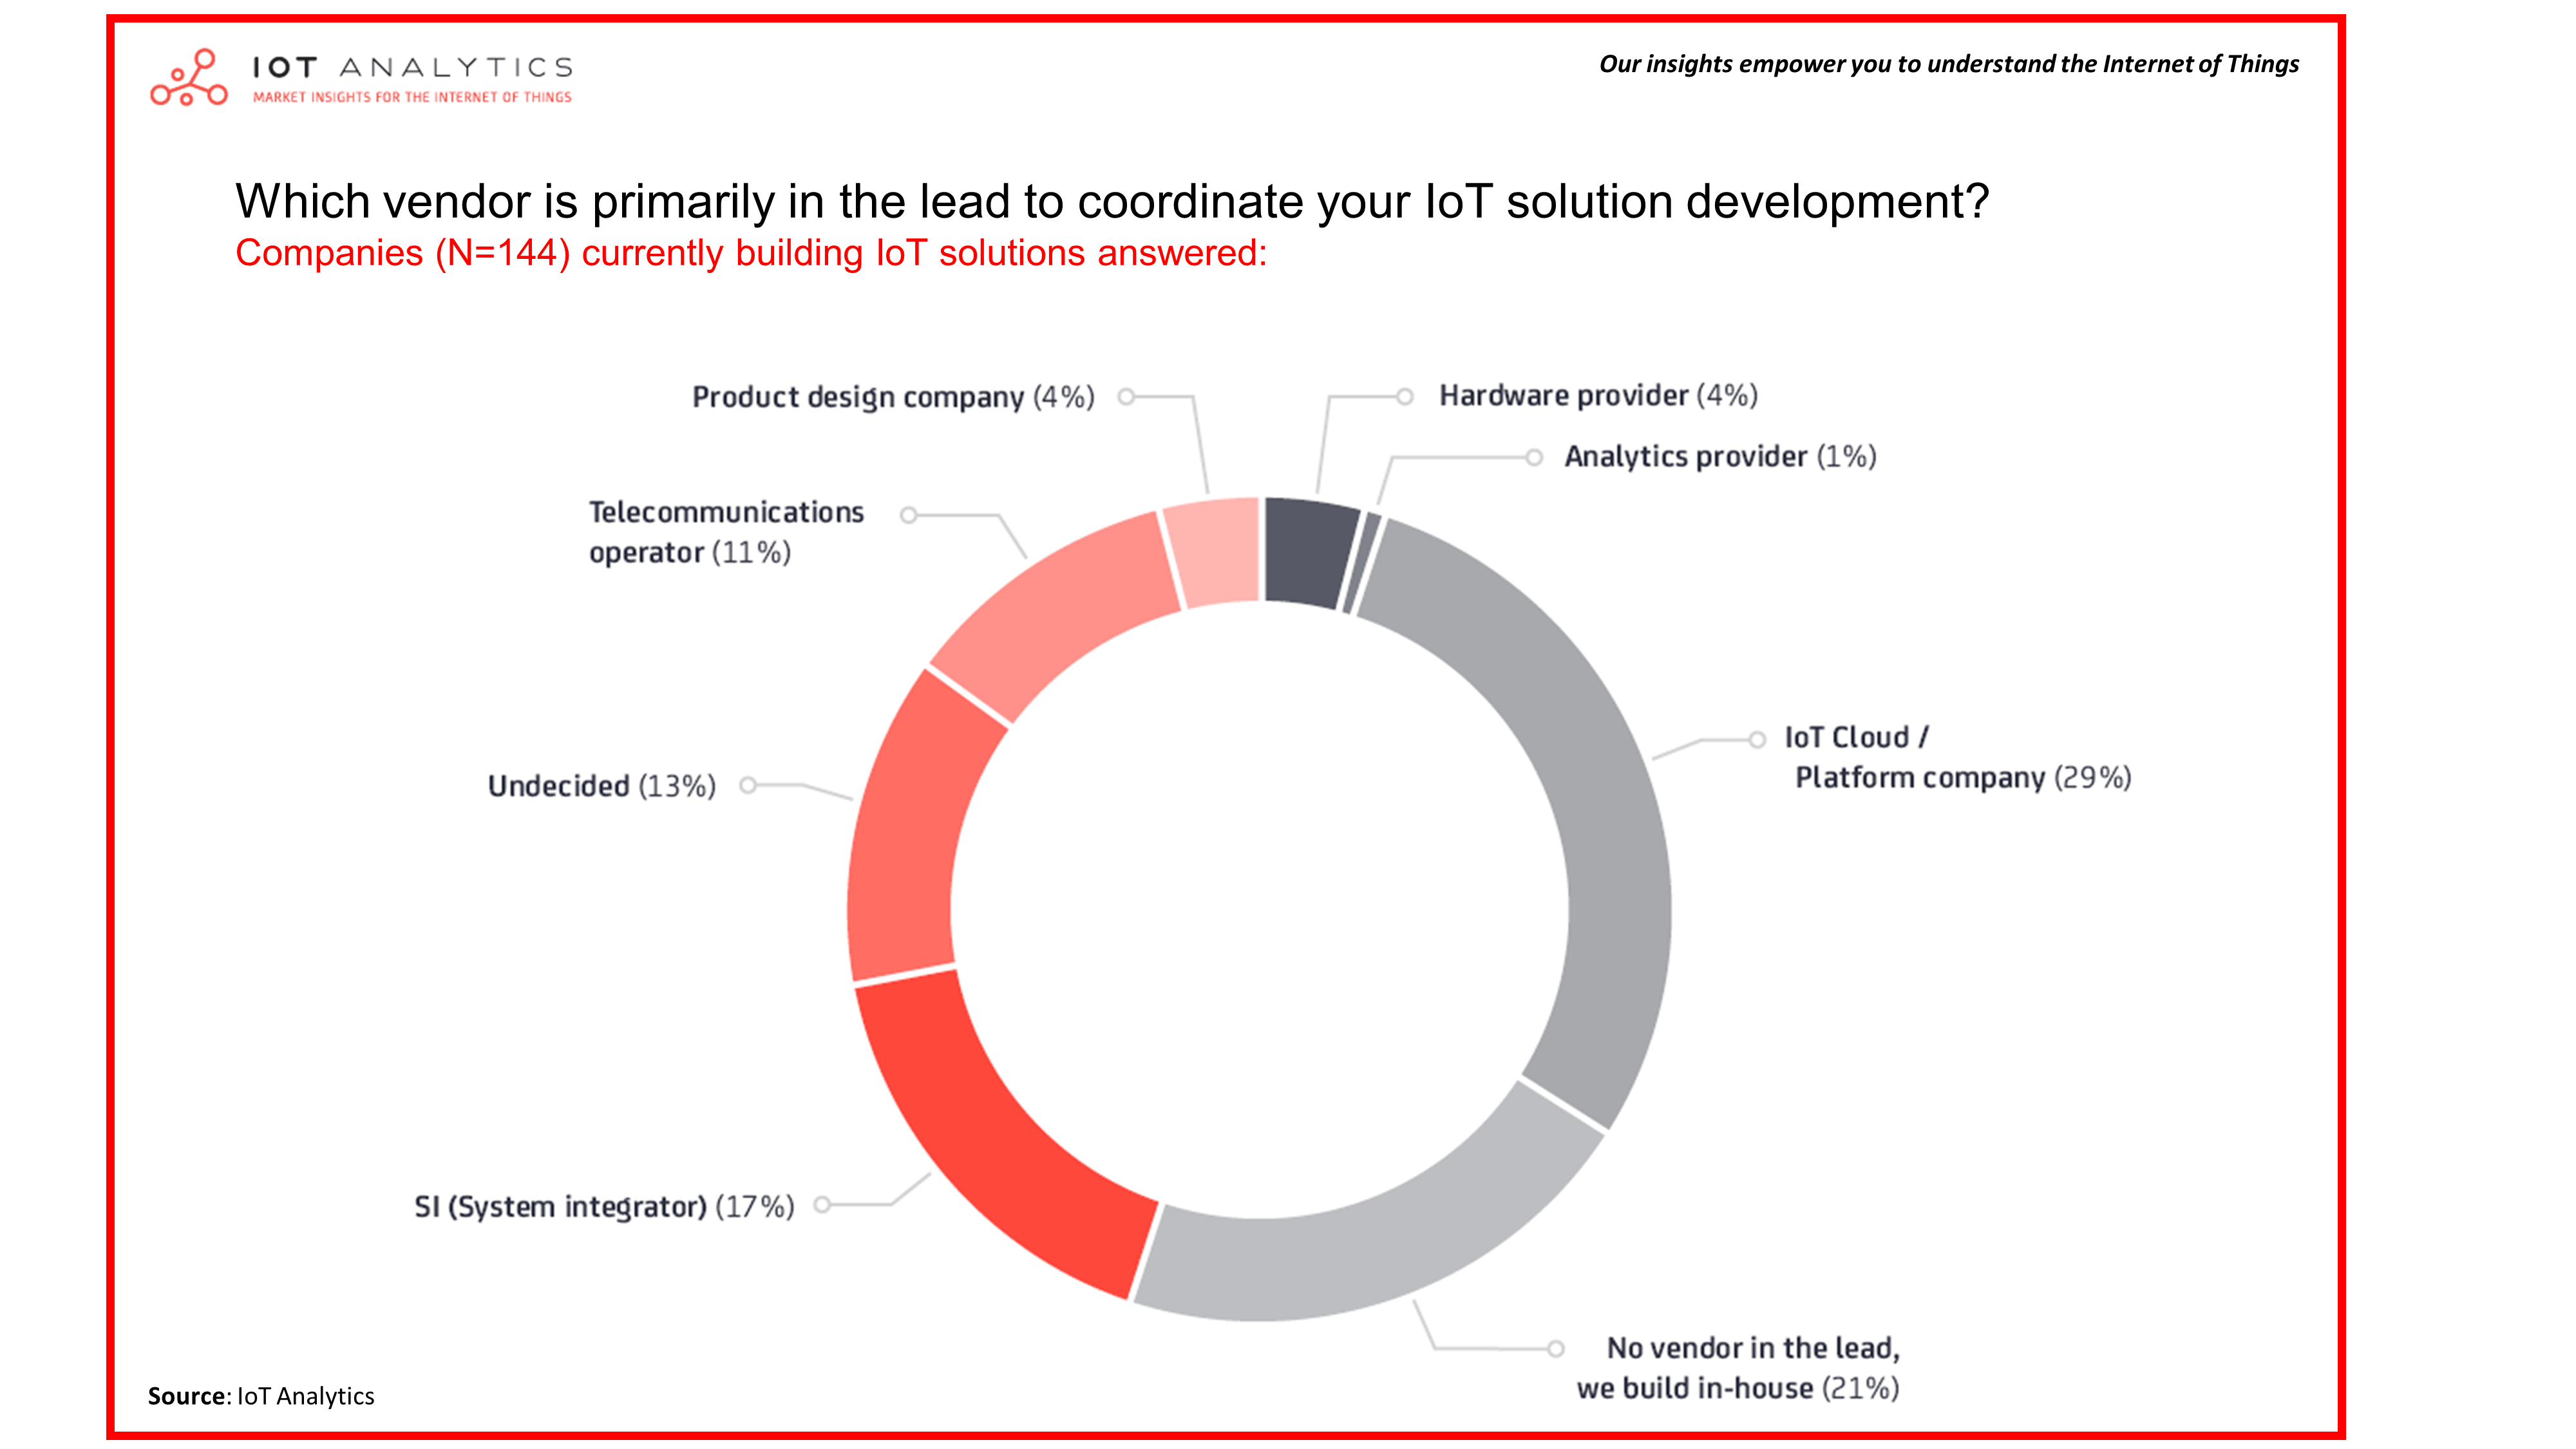 Who is in the lead for IoT Solution Development